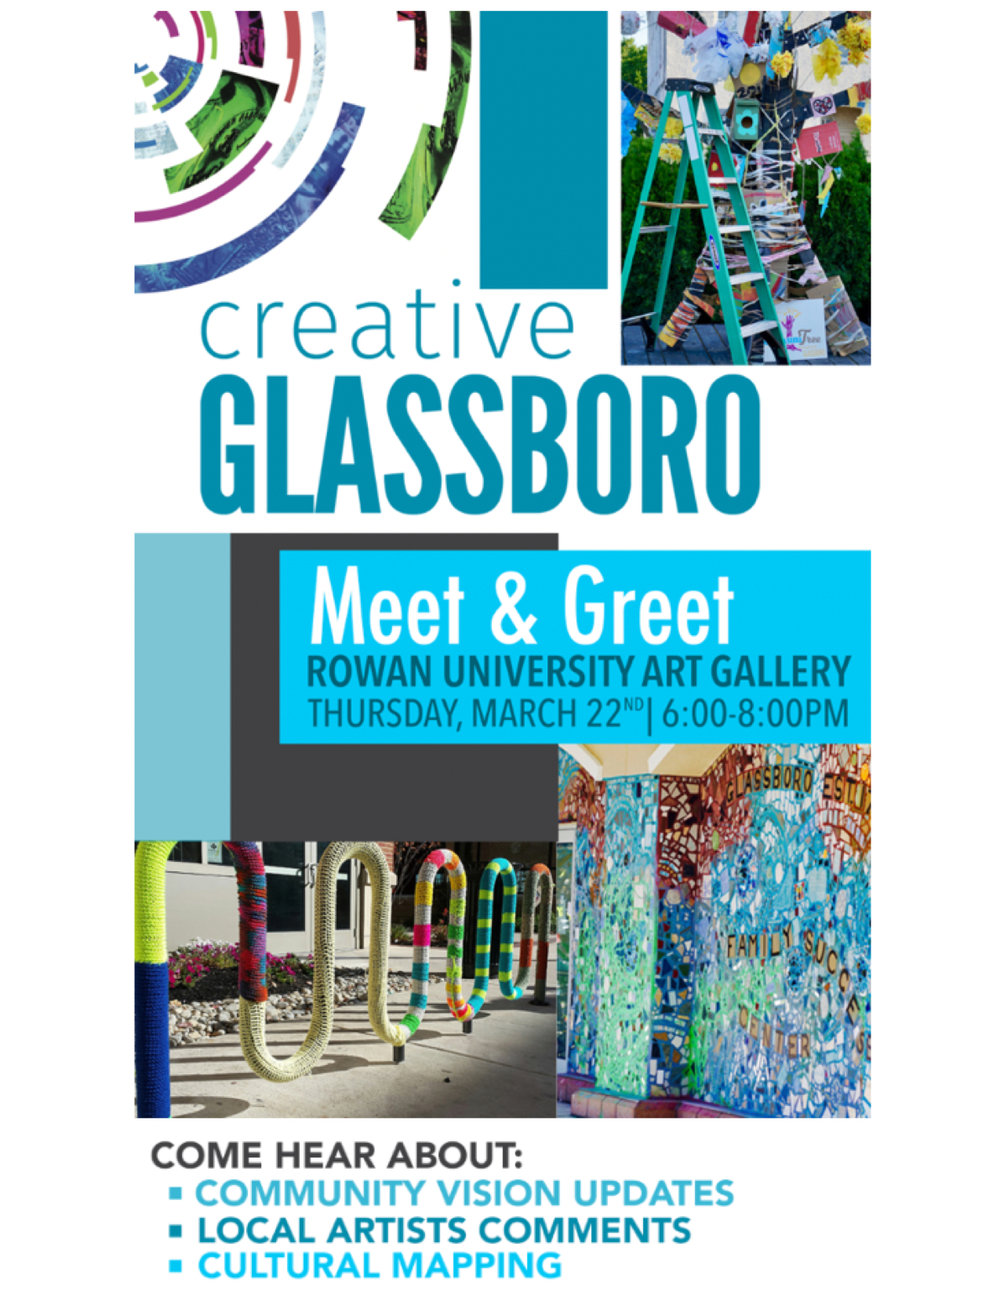 Creative Glassboro Meet & Greet Invite.jpeg